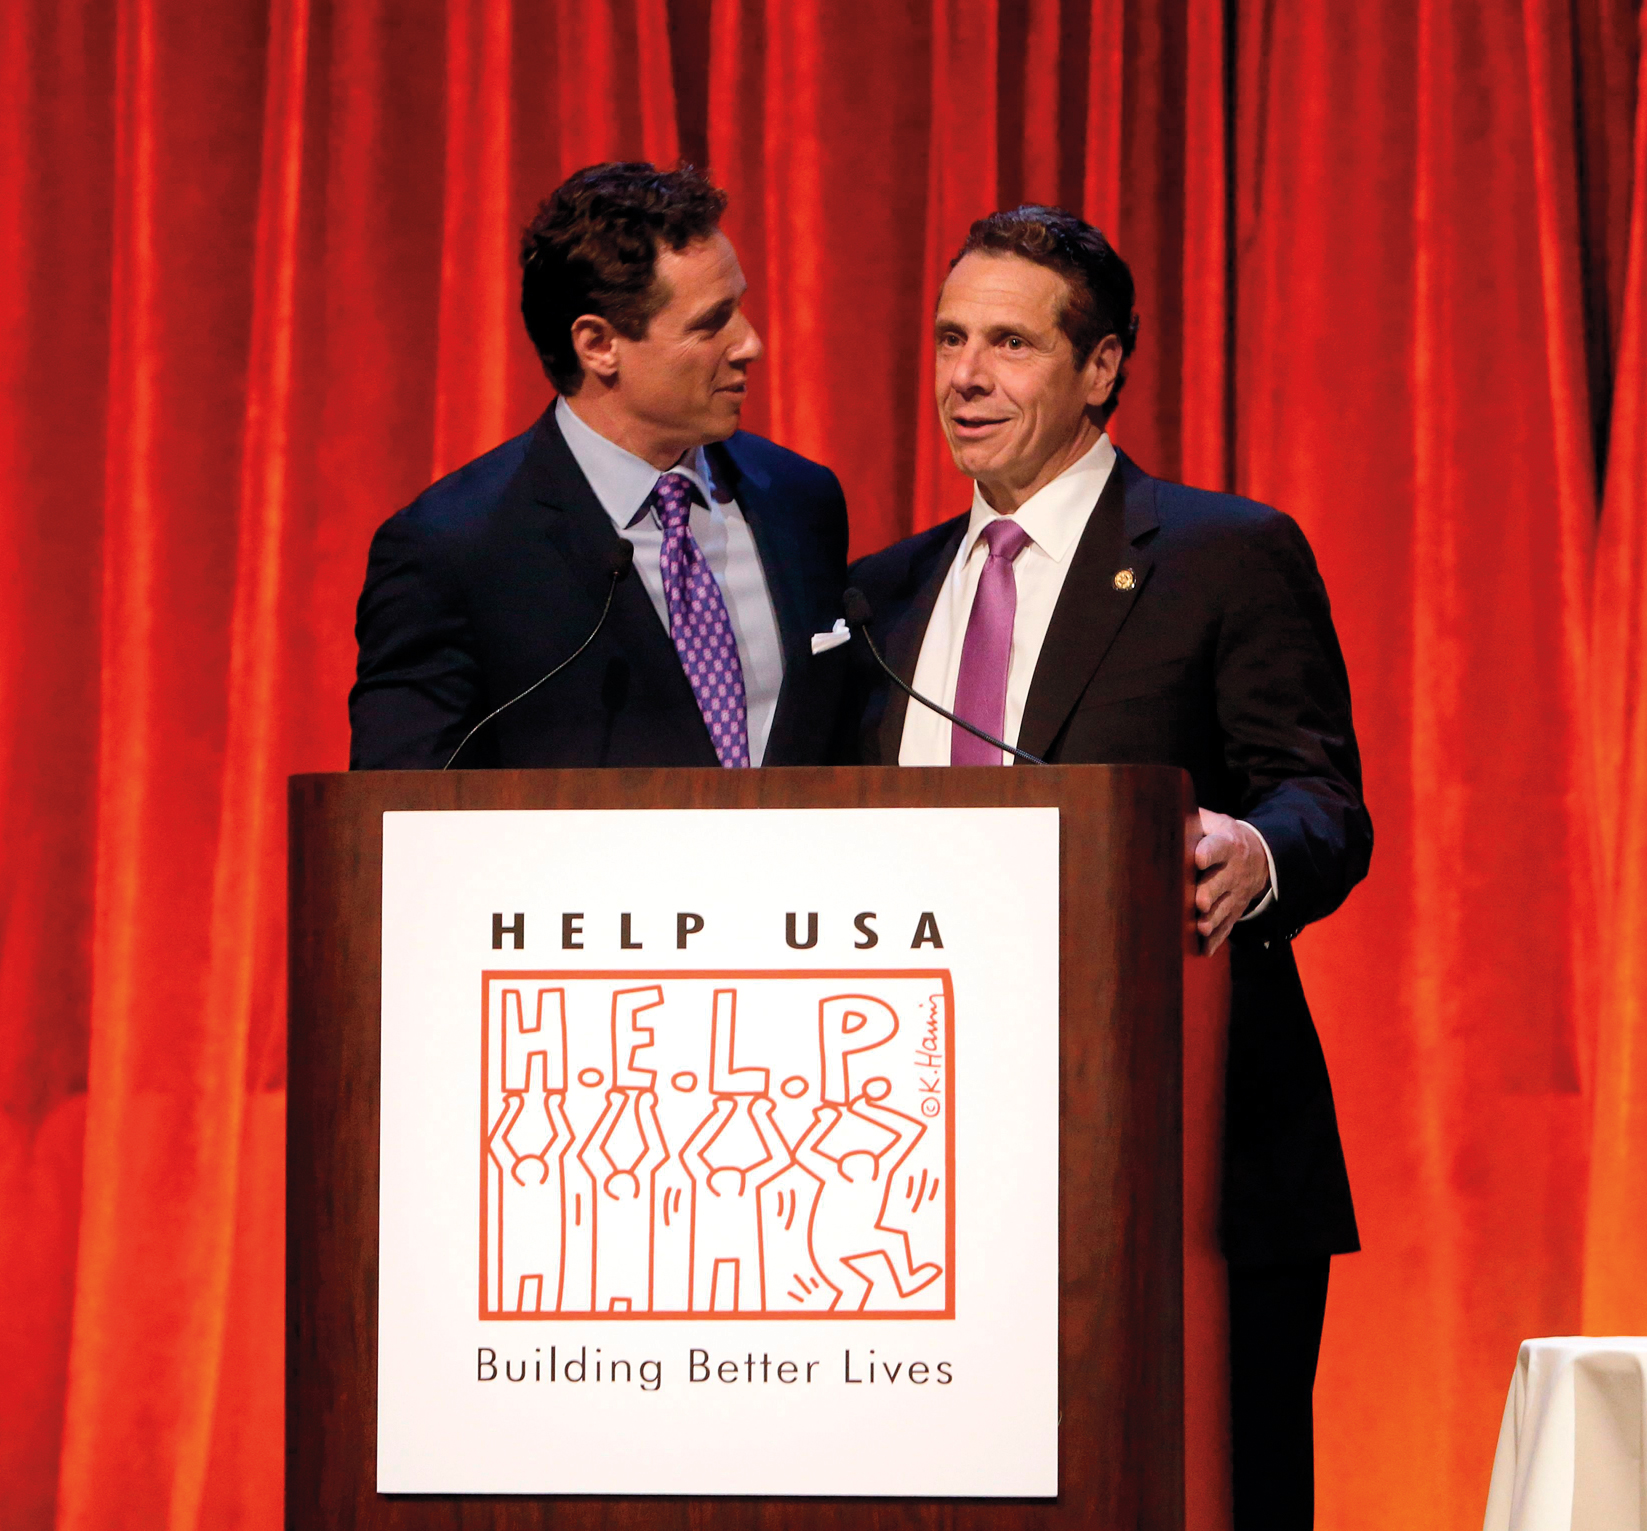 CNN News anchor Chris Cuomo, left, and his brother, New York Governor Andrew Cuomo onstage at the 2015 Help USA Hero Awards Dinner at Cipriani 42nd Street on Thurs., in New York City2015 HELP Hero Awards Dinner, New York, USA - 28 May 2015